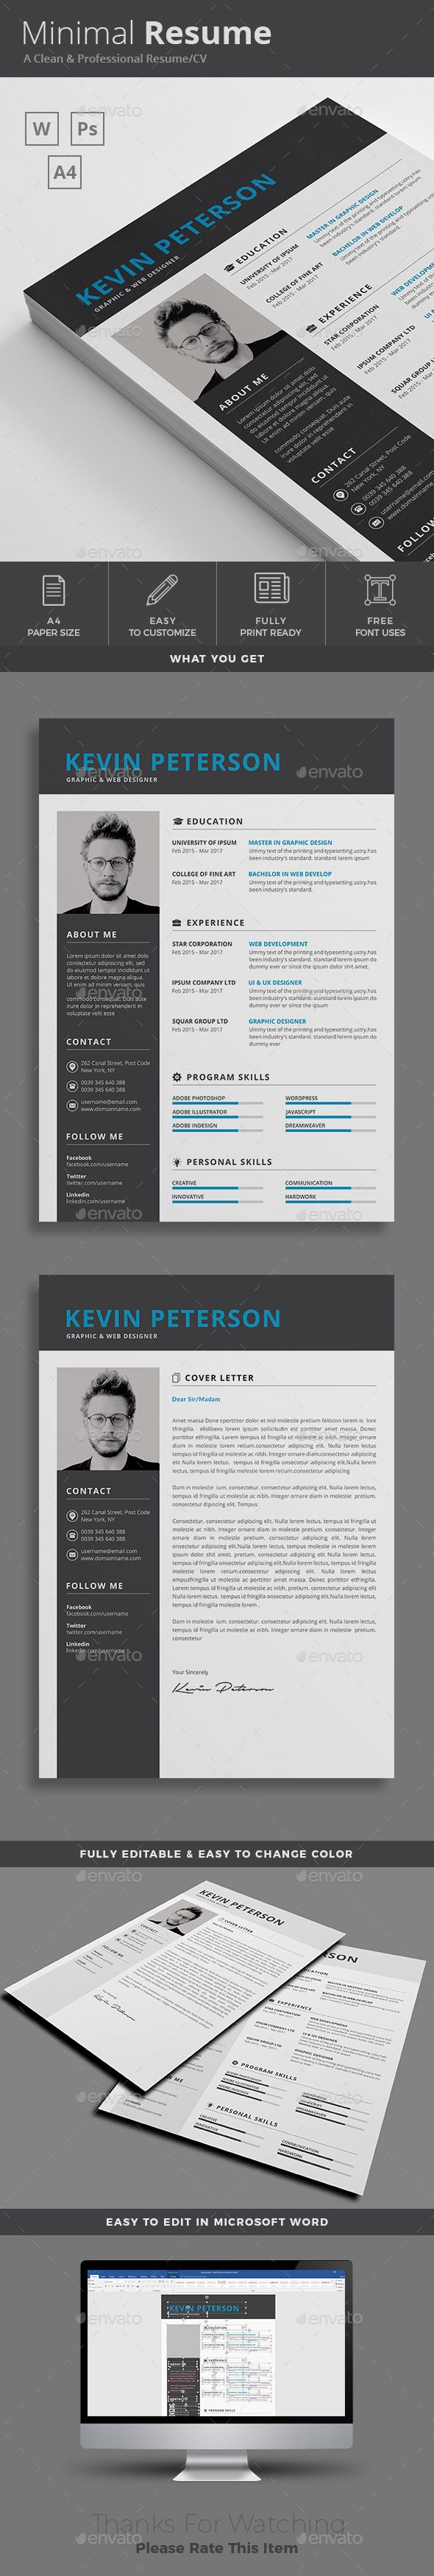 Functional Resume Template Microsoft%0A Resume  Resume A  Template PSD  MS Word